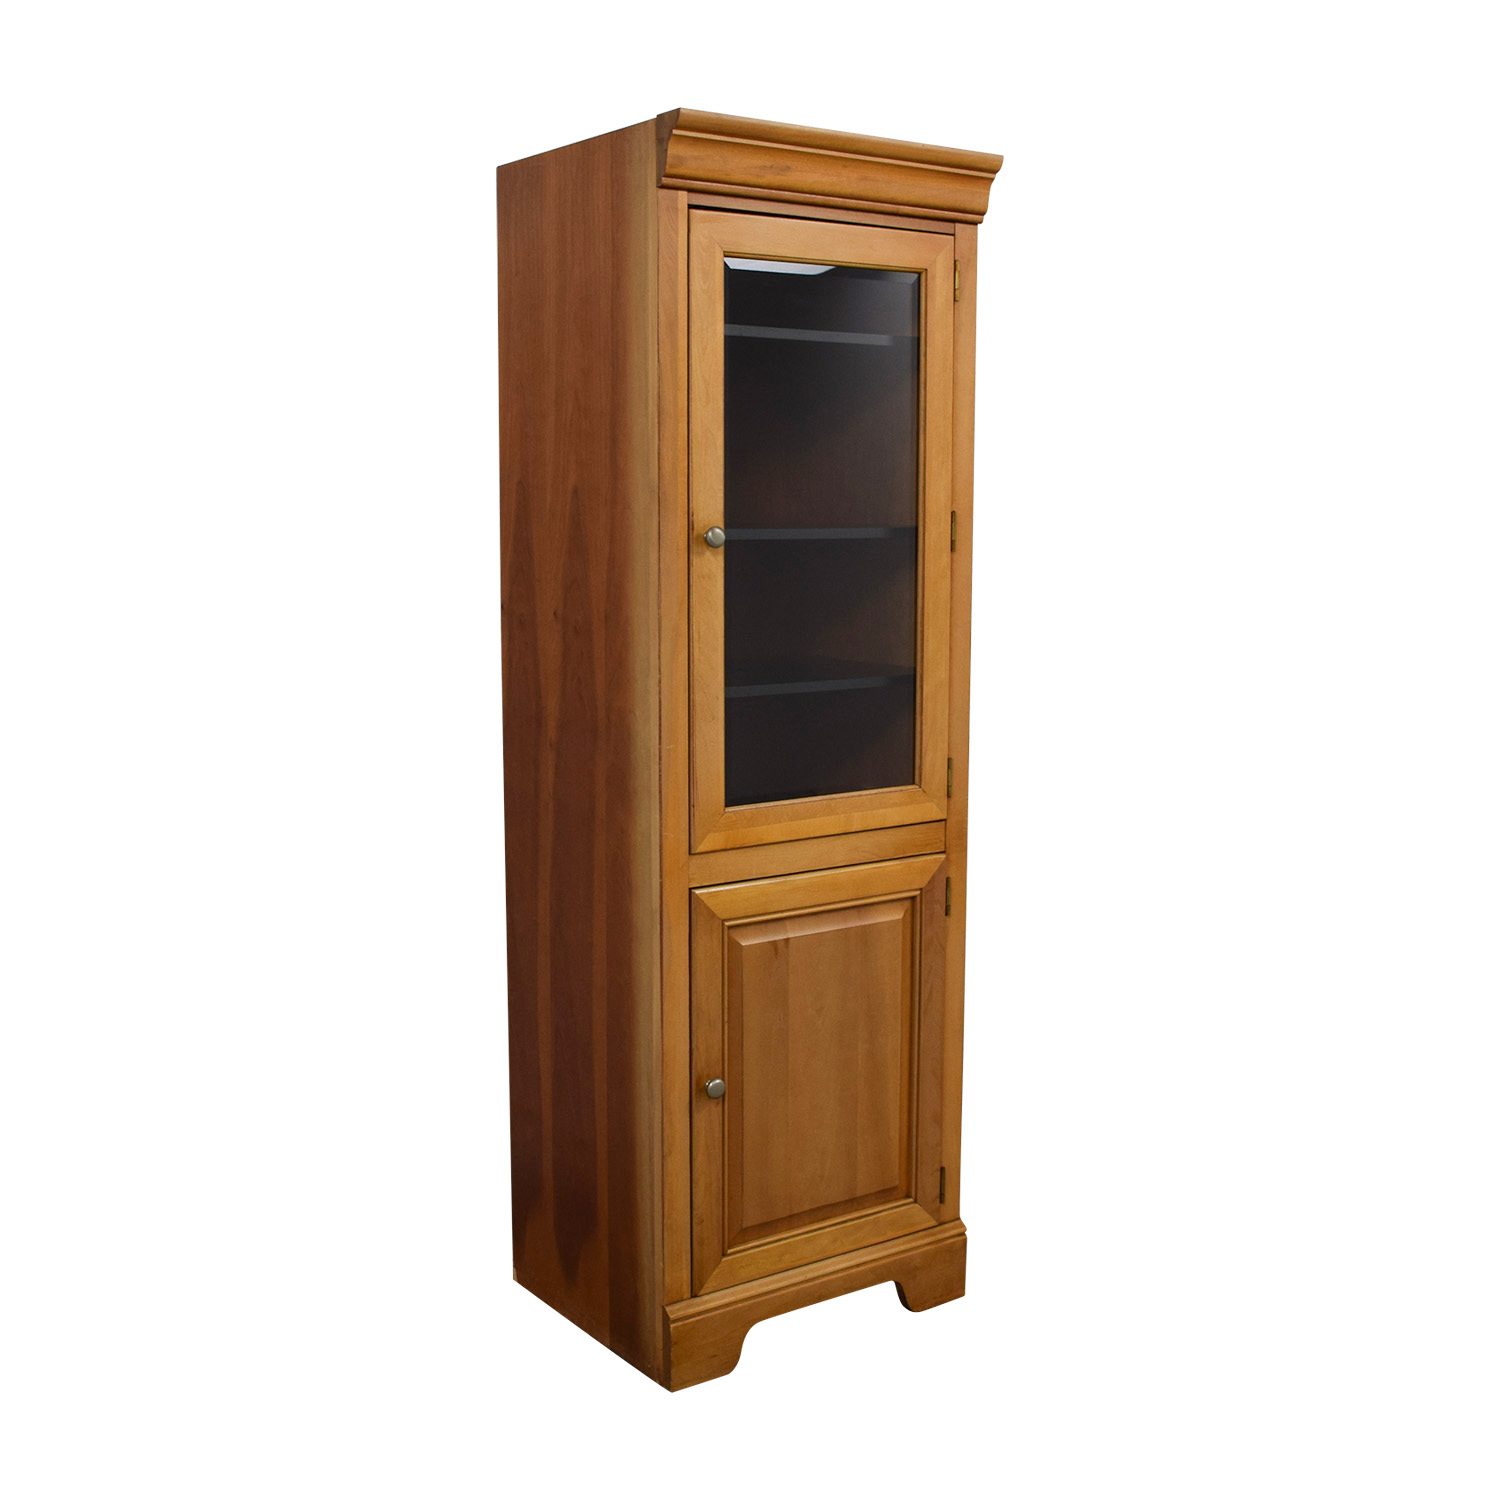 ... Stanley Furniture Company Tall Wood And Glass Cabinet / Cabinets U0026  Sideboards ...